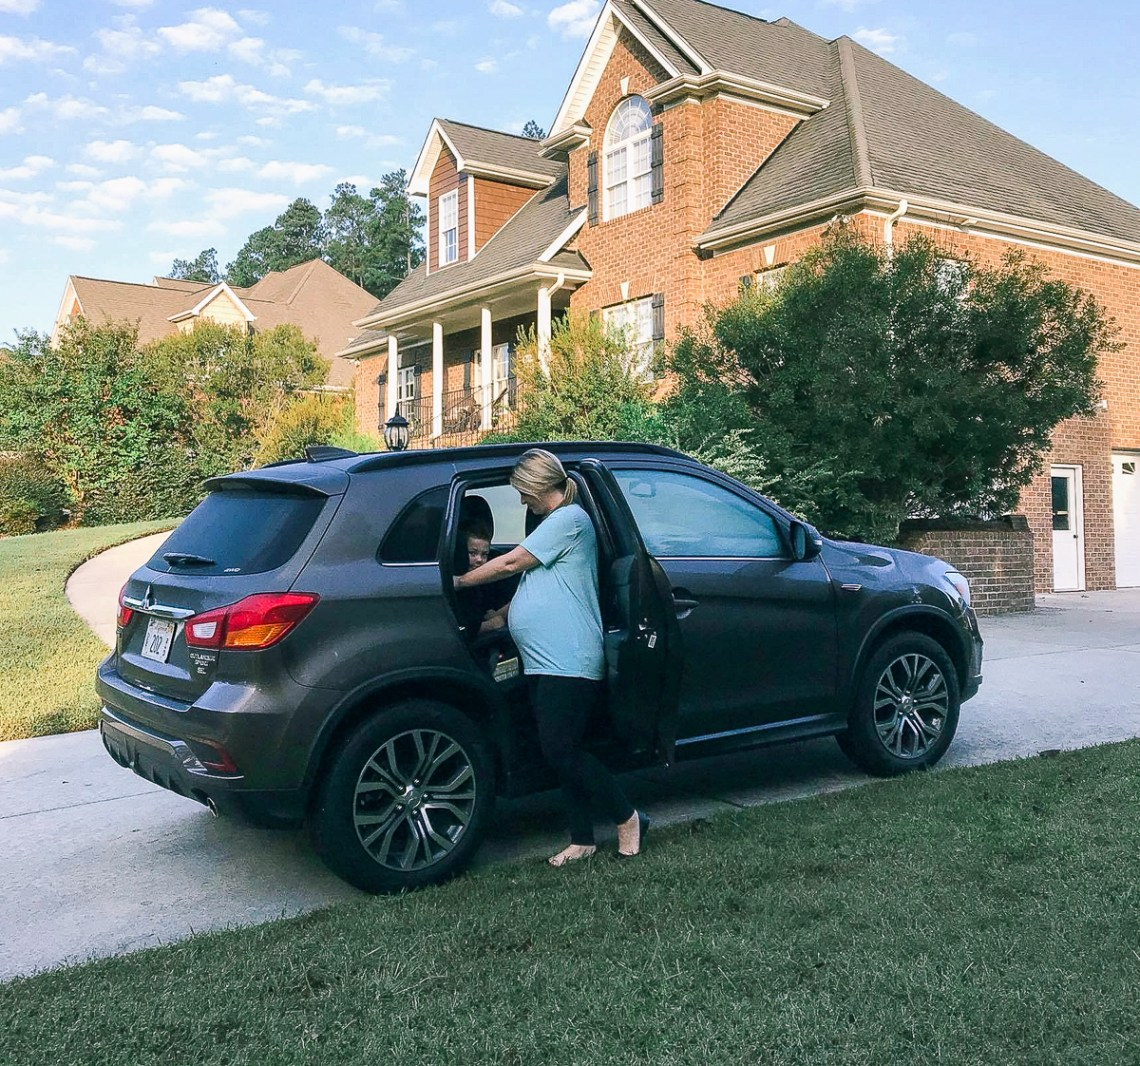 Pumpkin Patch, Festival, Scenic Fall Drives - Fall Bucket List with Mitsubishi Outlander Sport and @frostedevents Misty Nelson